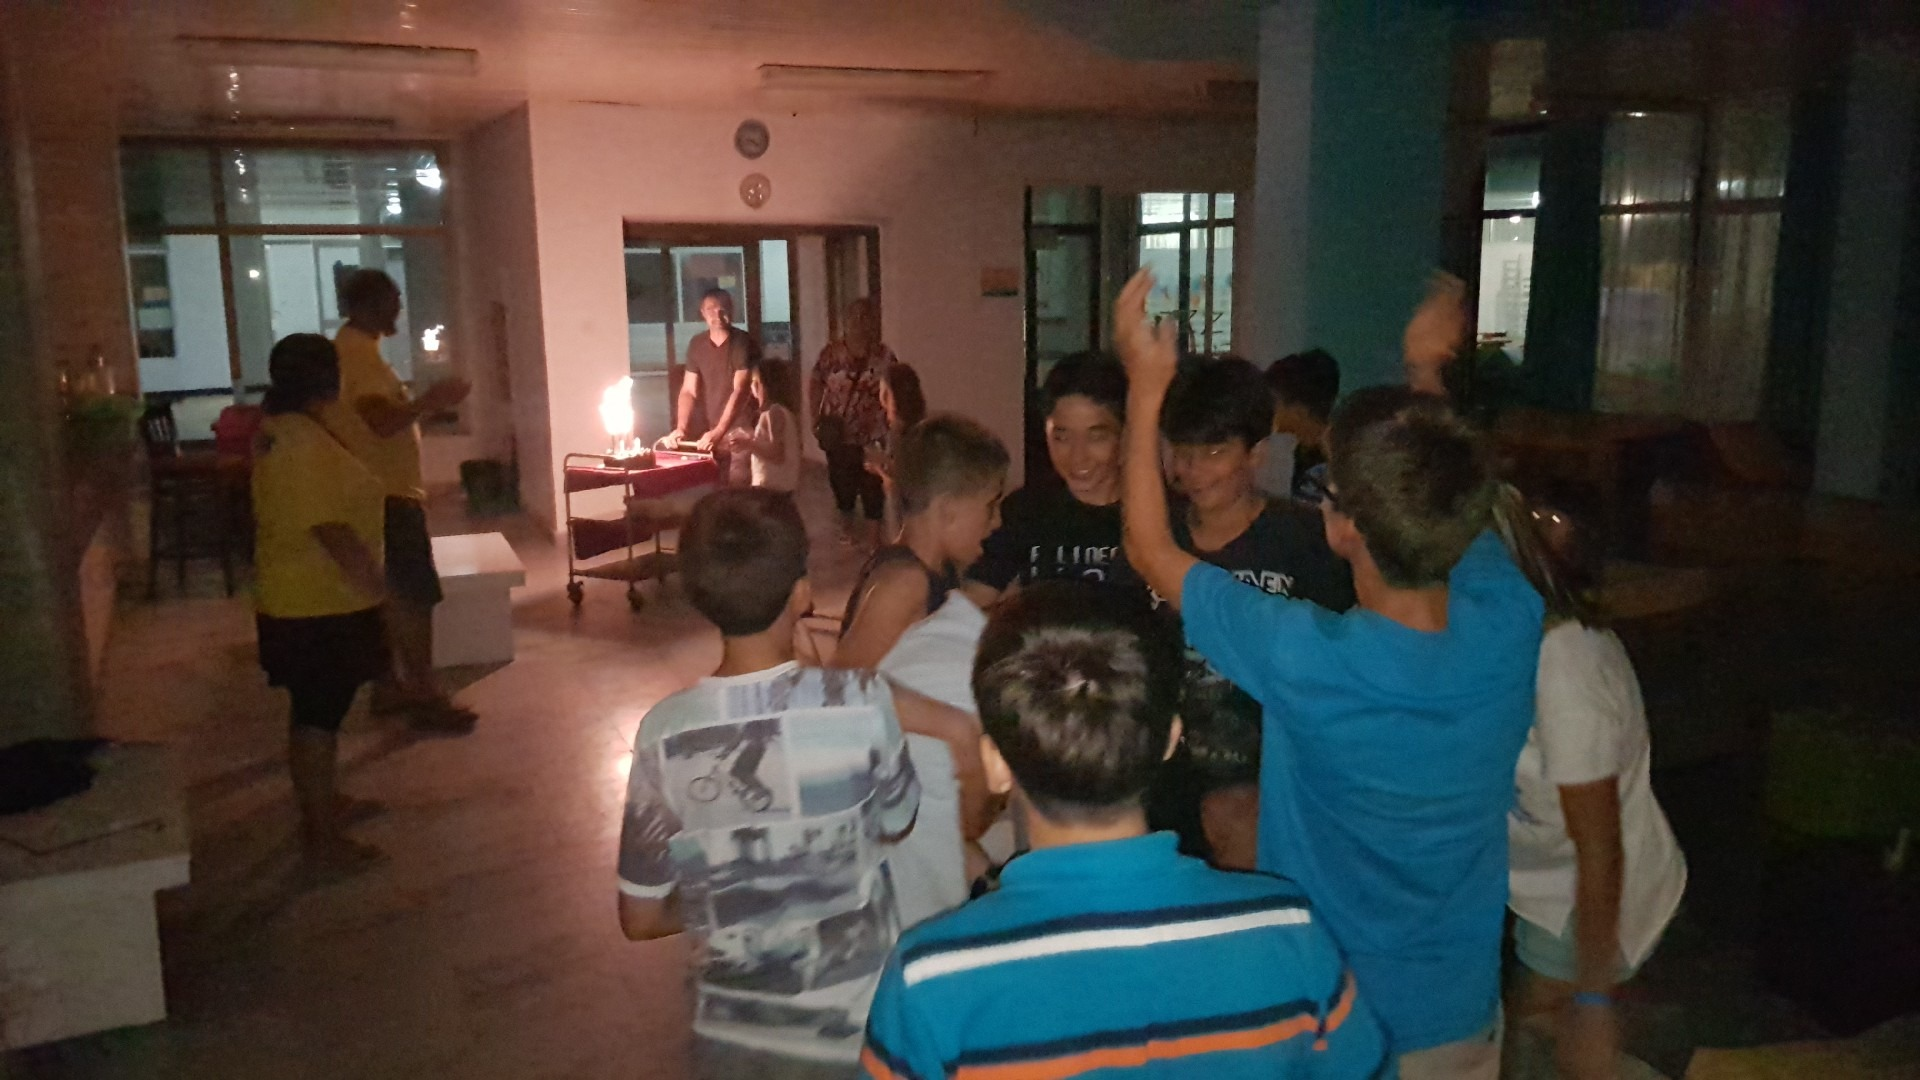 summer language camps in Bulgaria Z camp, Day 34 - birthday - the cake candles are lit